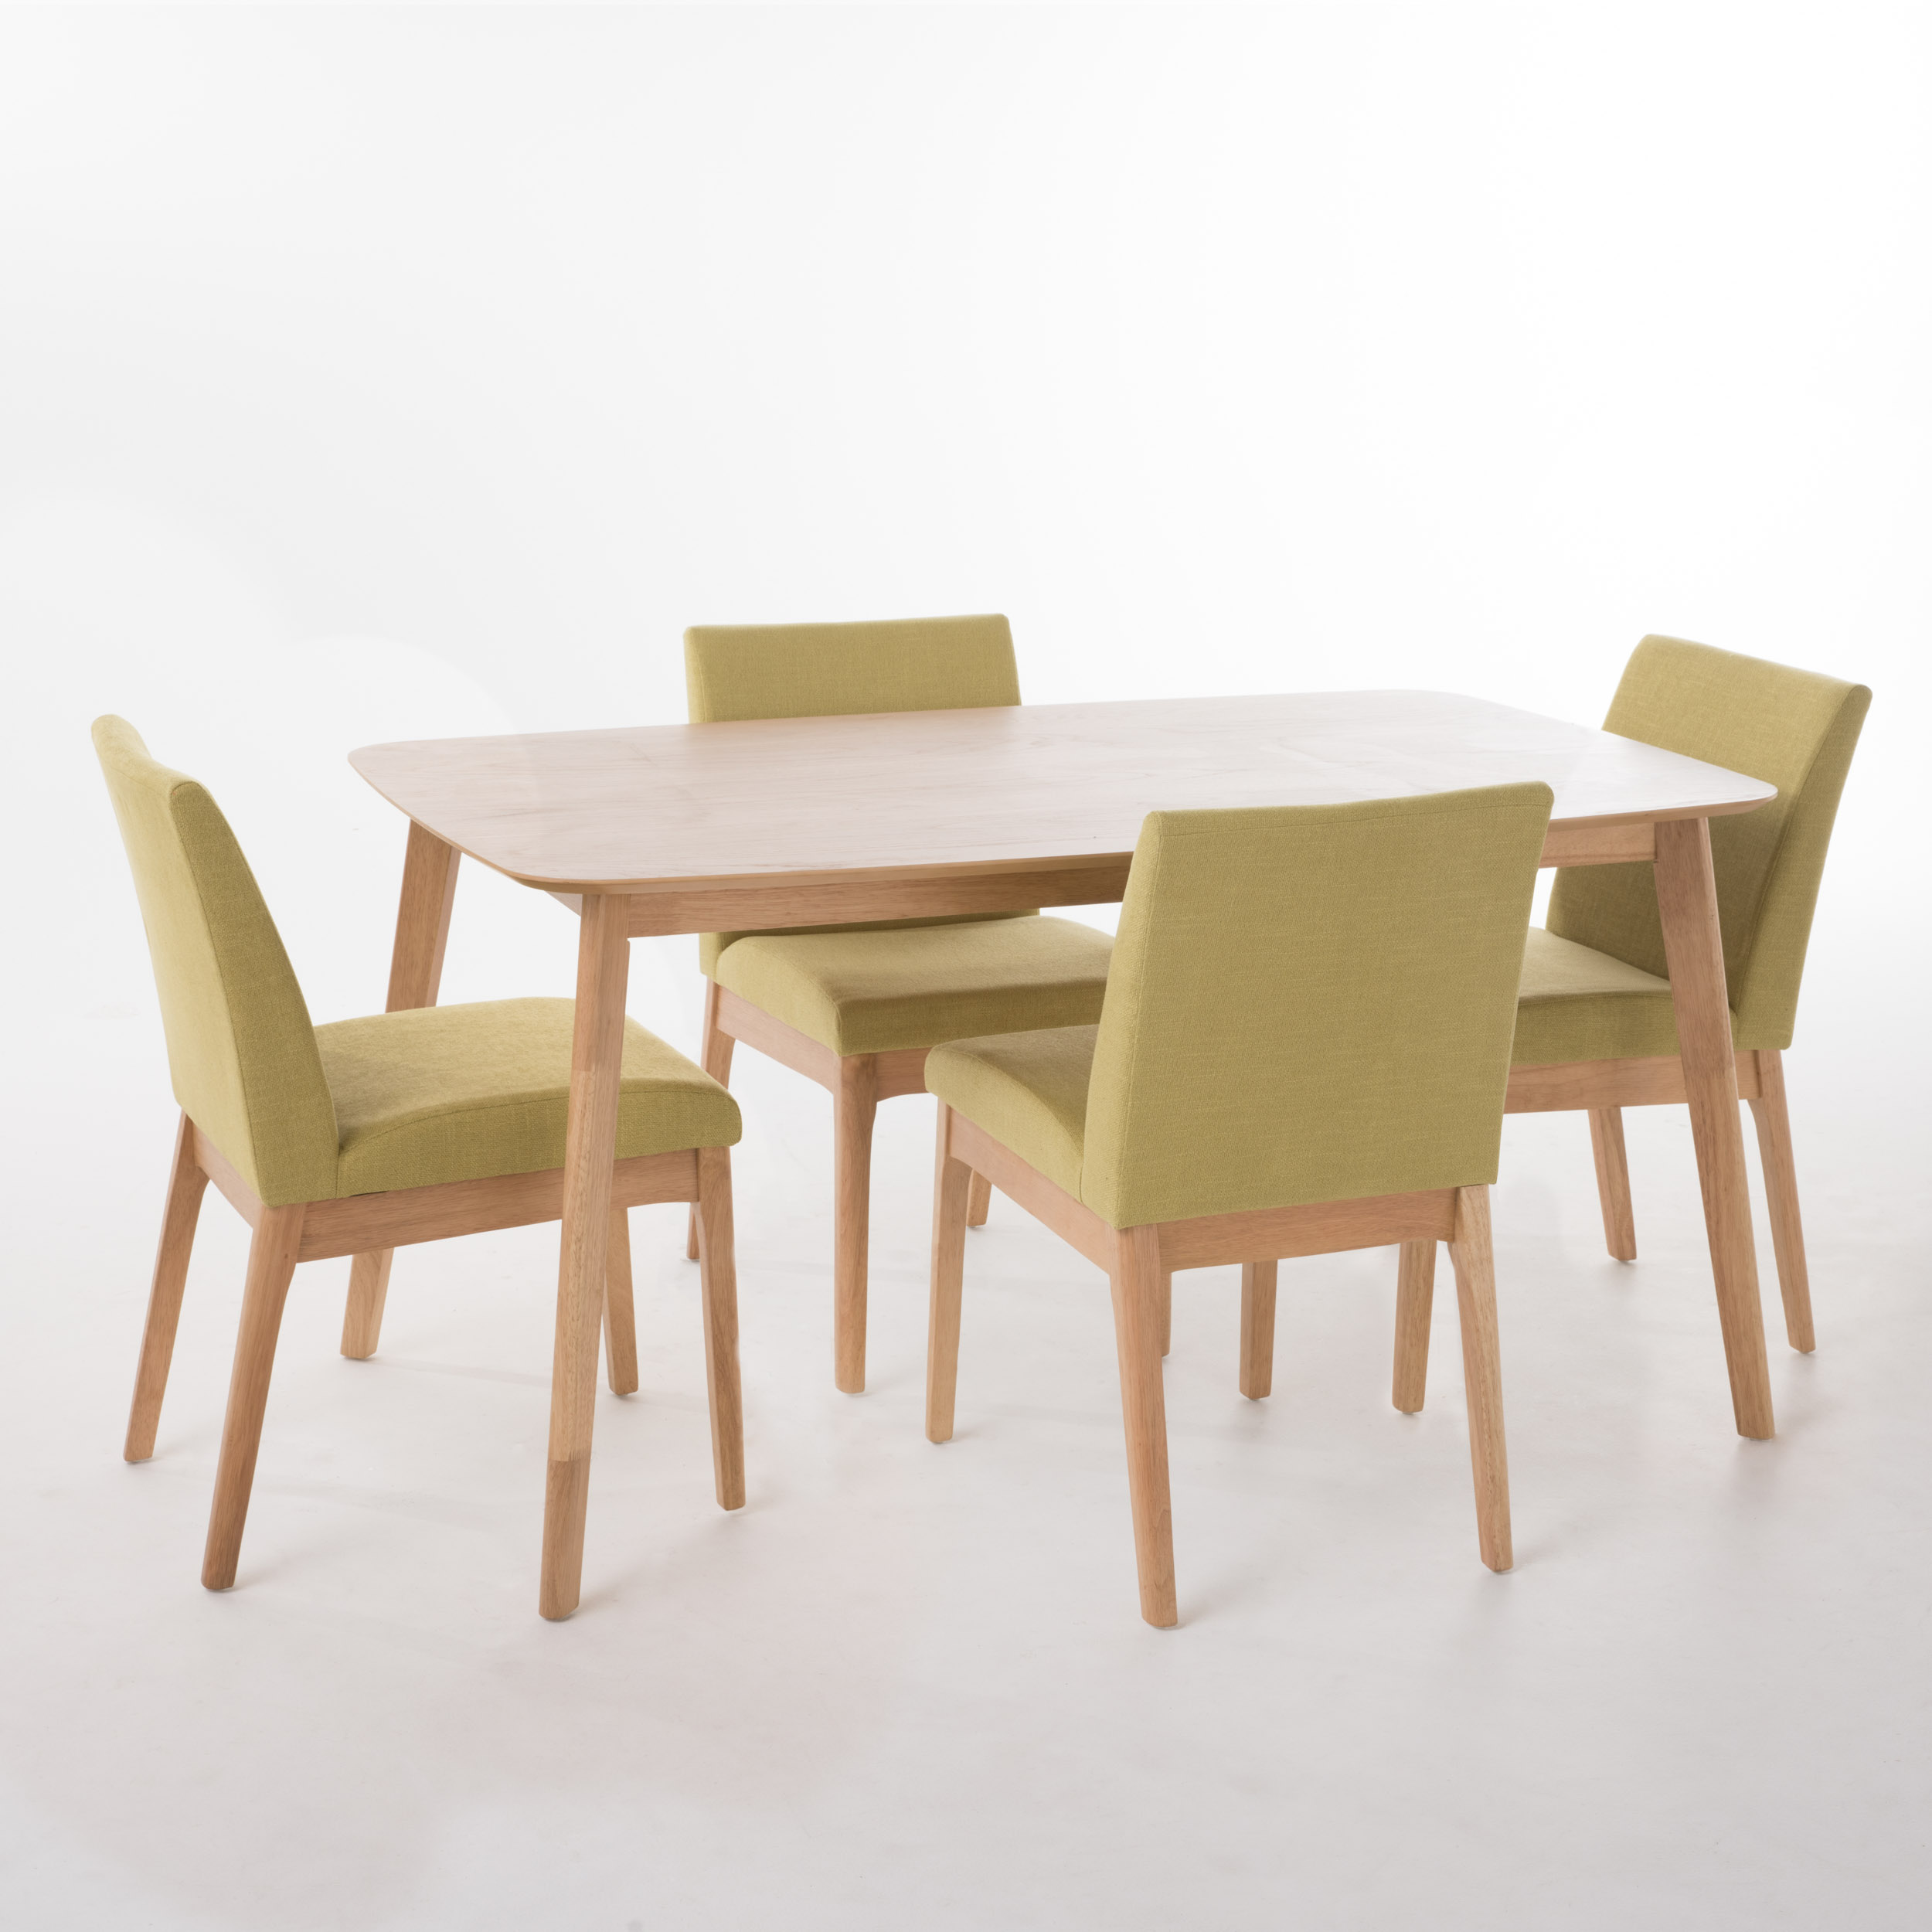 "Kwame Natural Oak Finish 60"" Rectangular 5 Piece Dining Set, Green Tea Fabric"